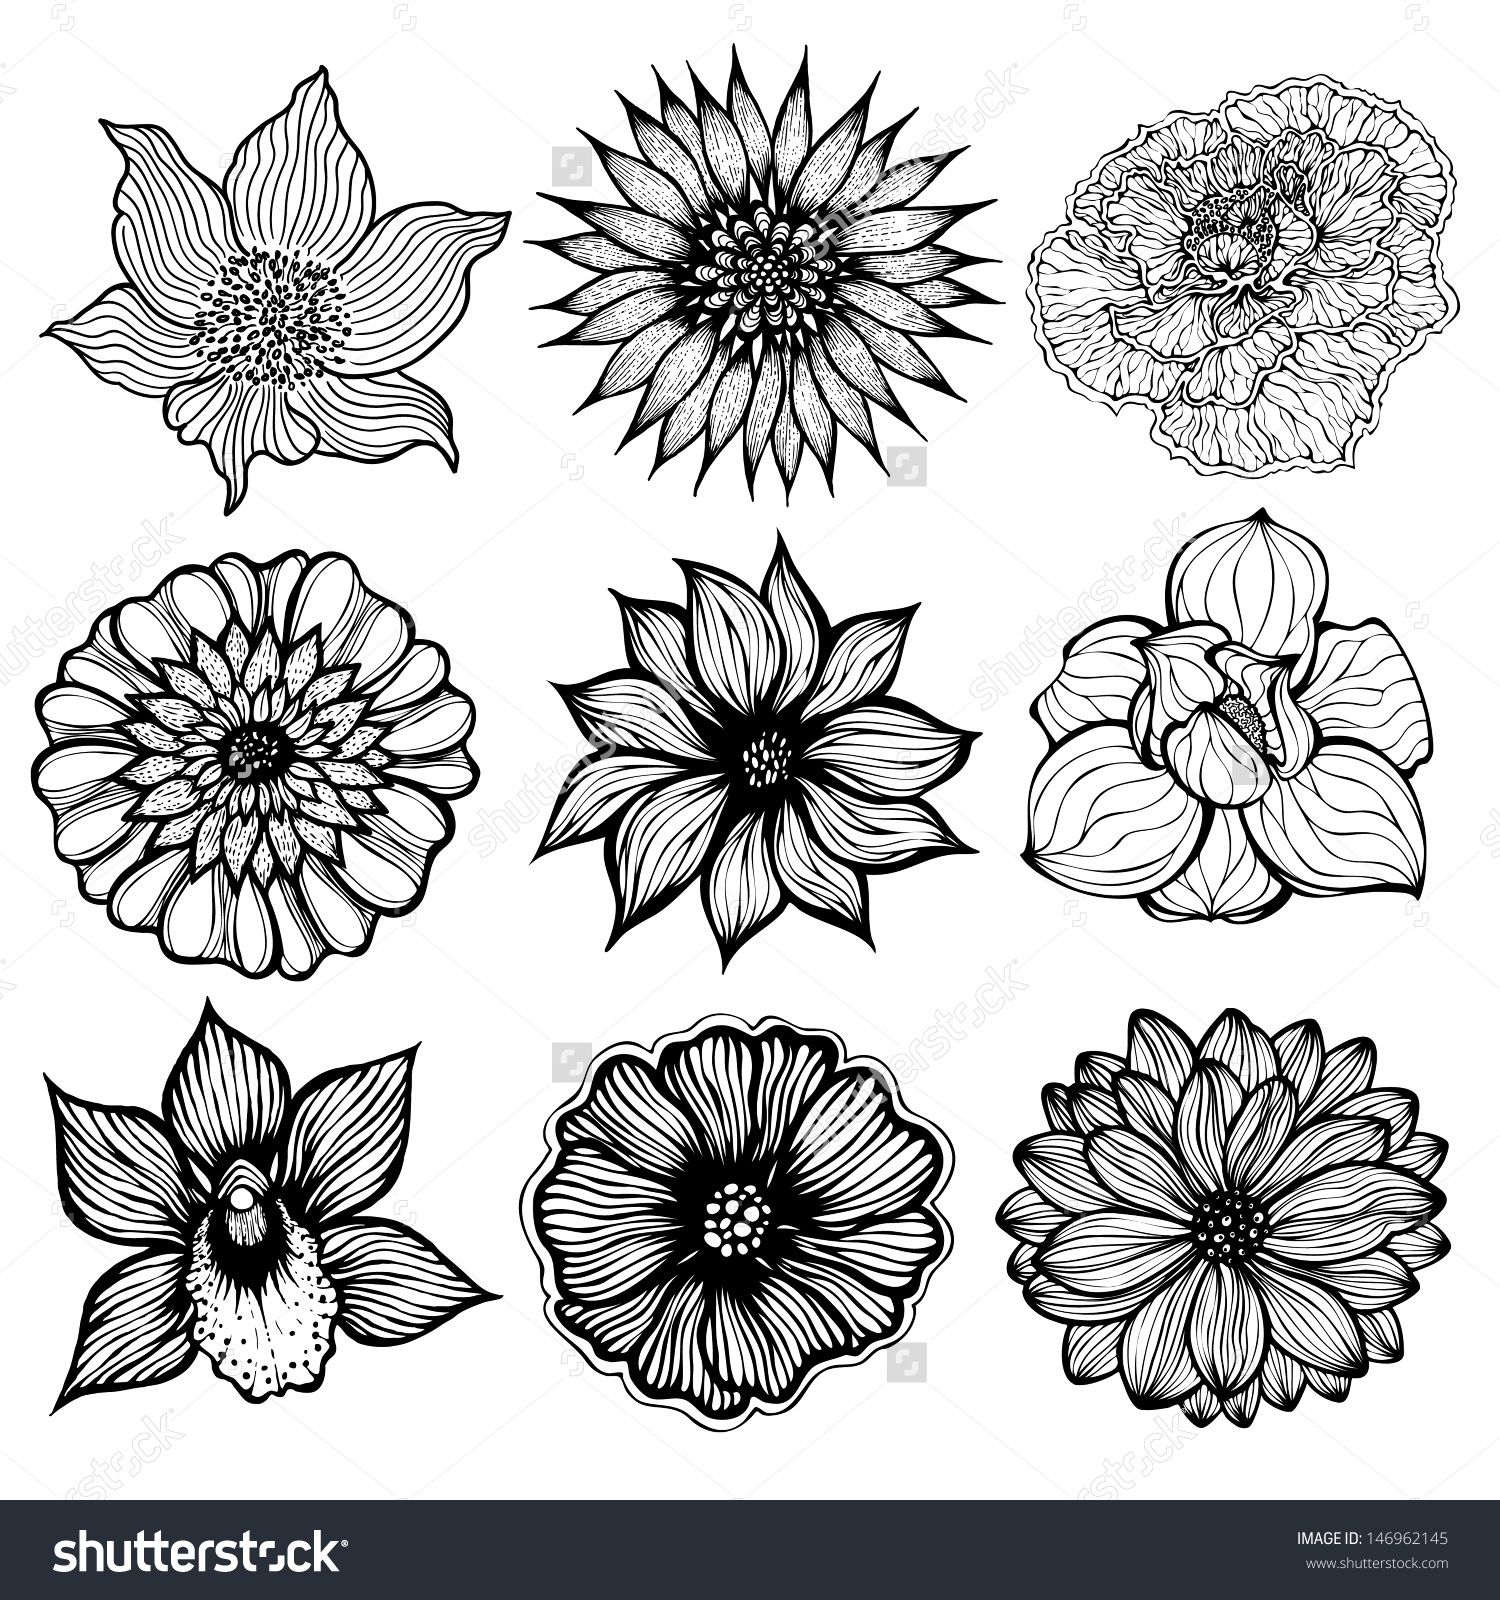 1500x1600 Set Of 9 Different Hand Drawn Flowers, Black And White Isolated